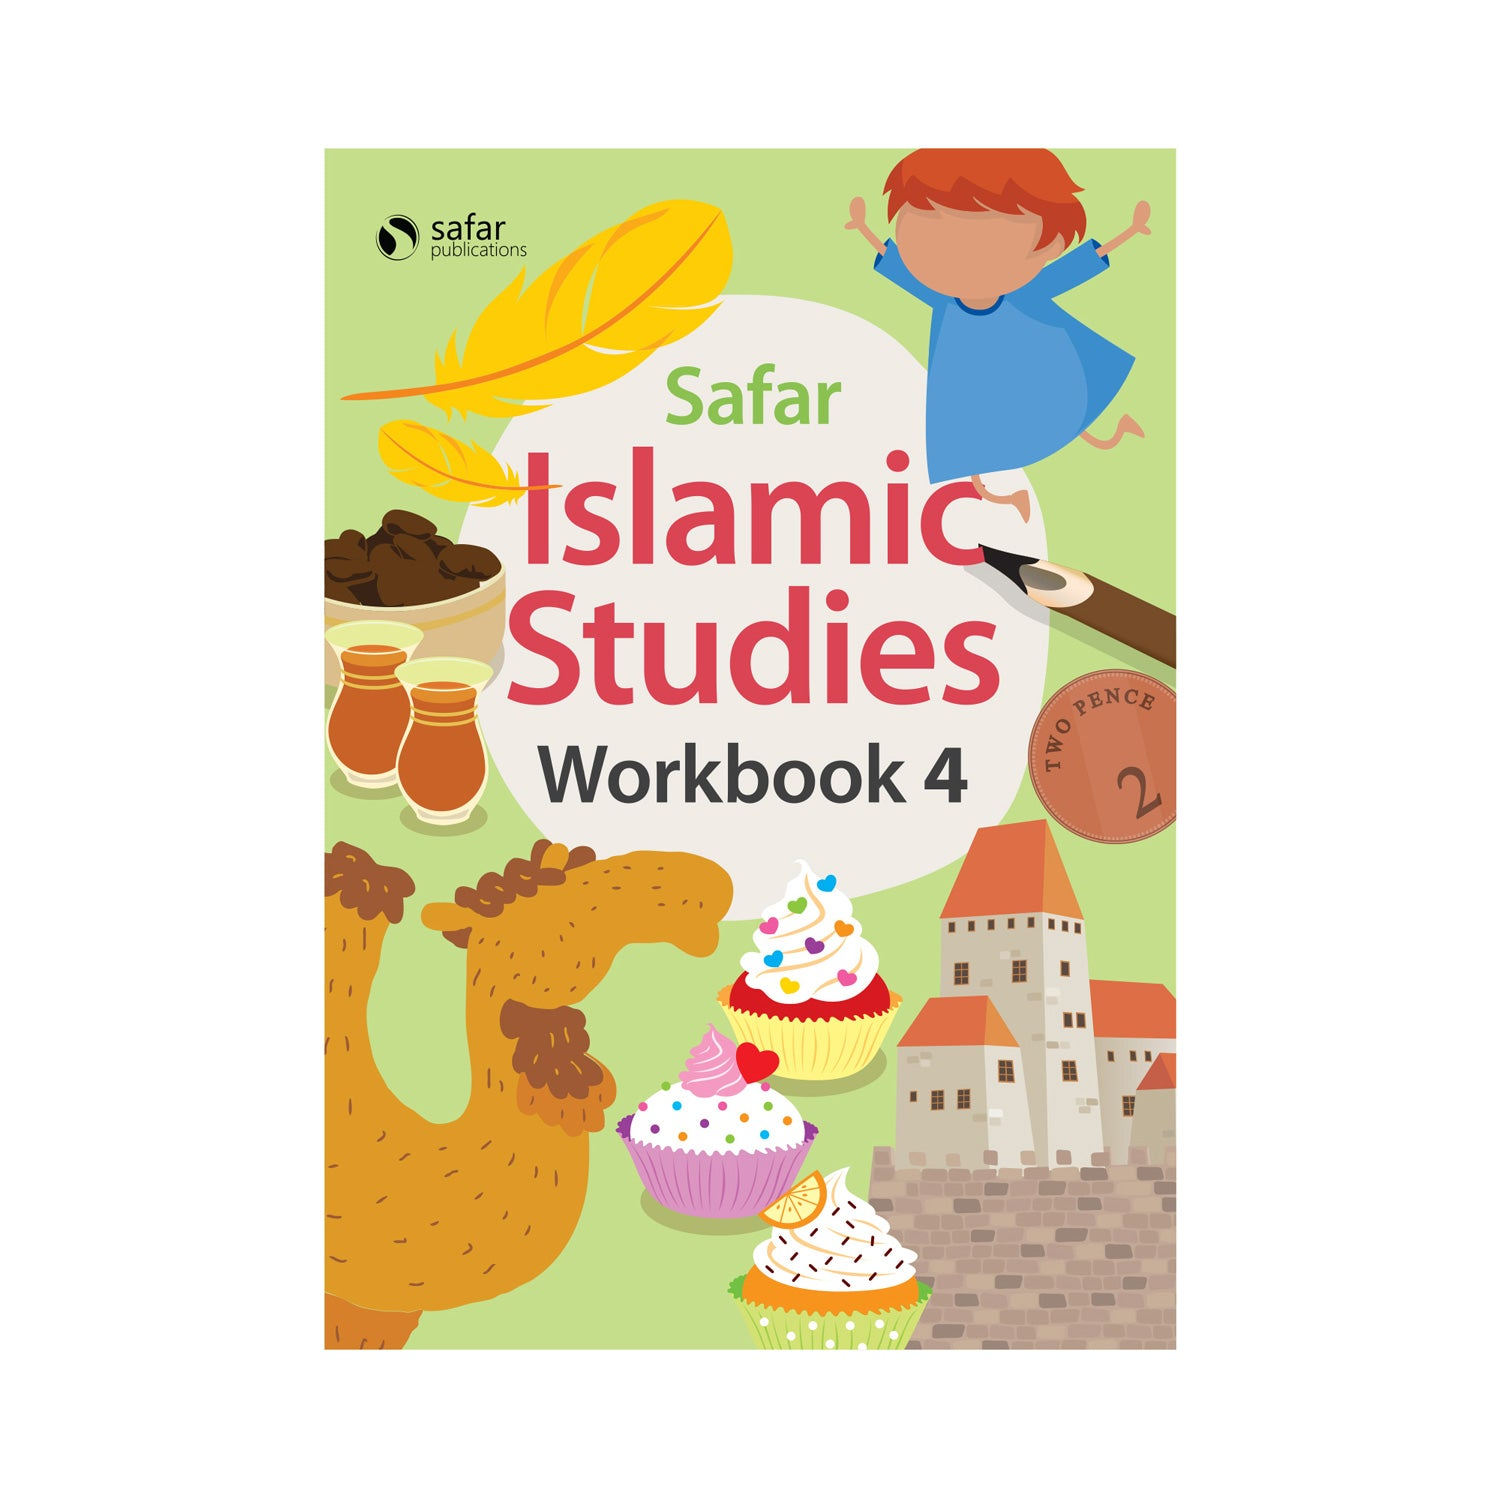 Islamic Studies: Workbook 4 – Learn about Islam Series by Safar